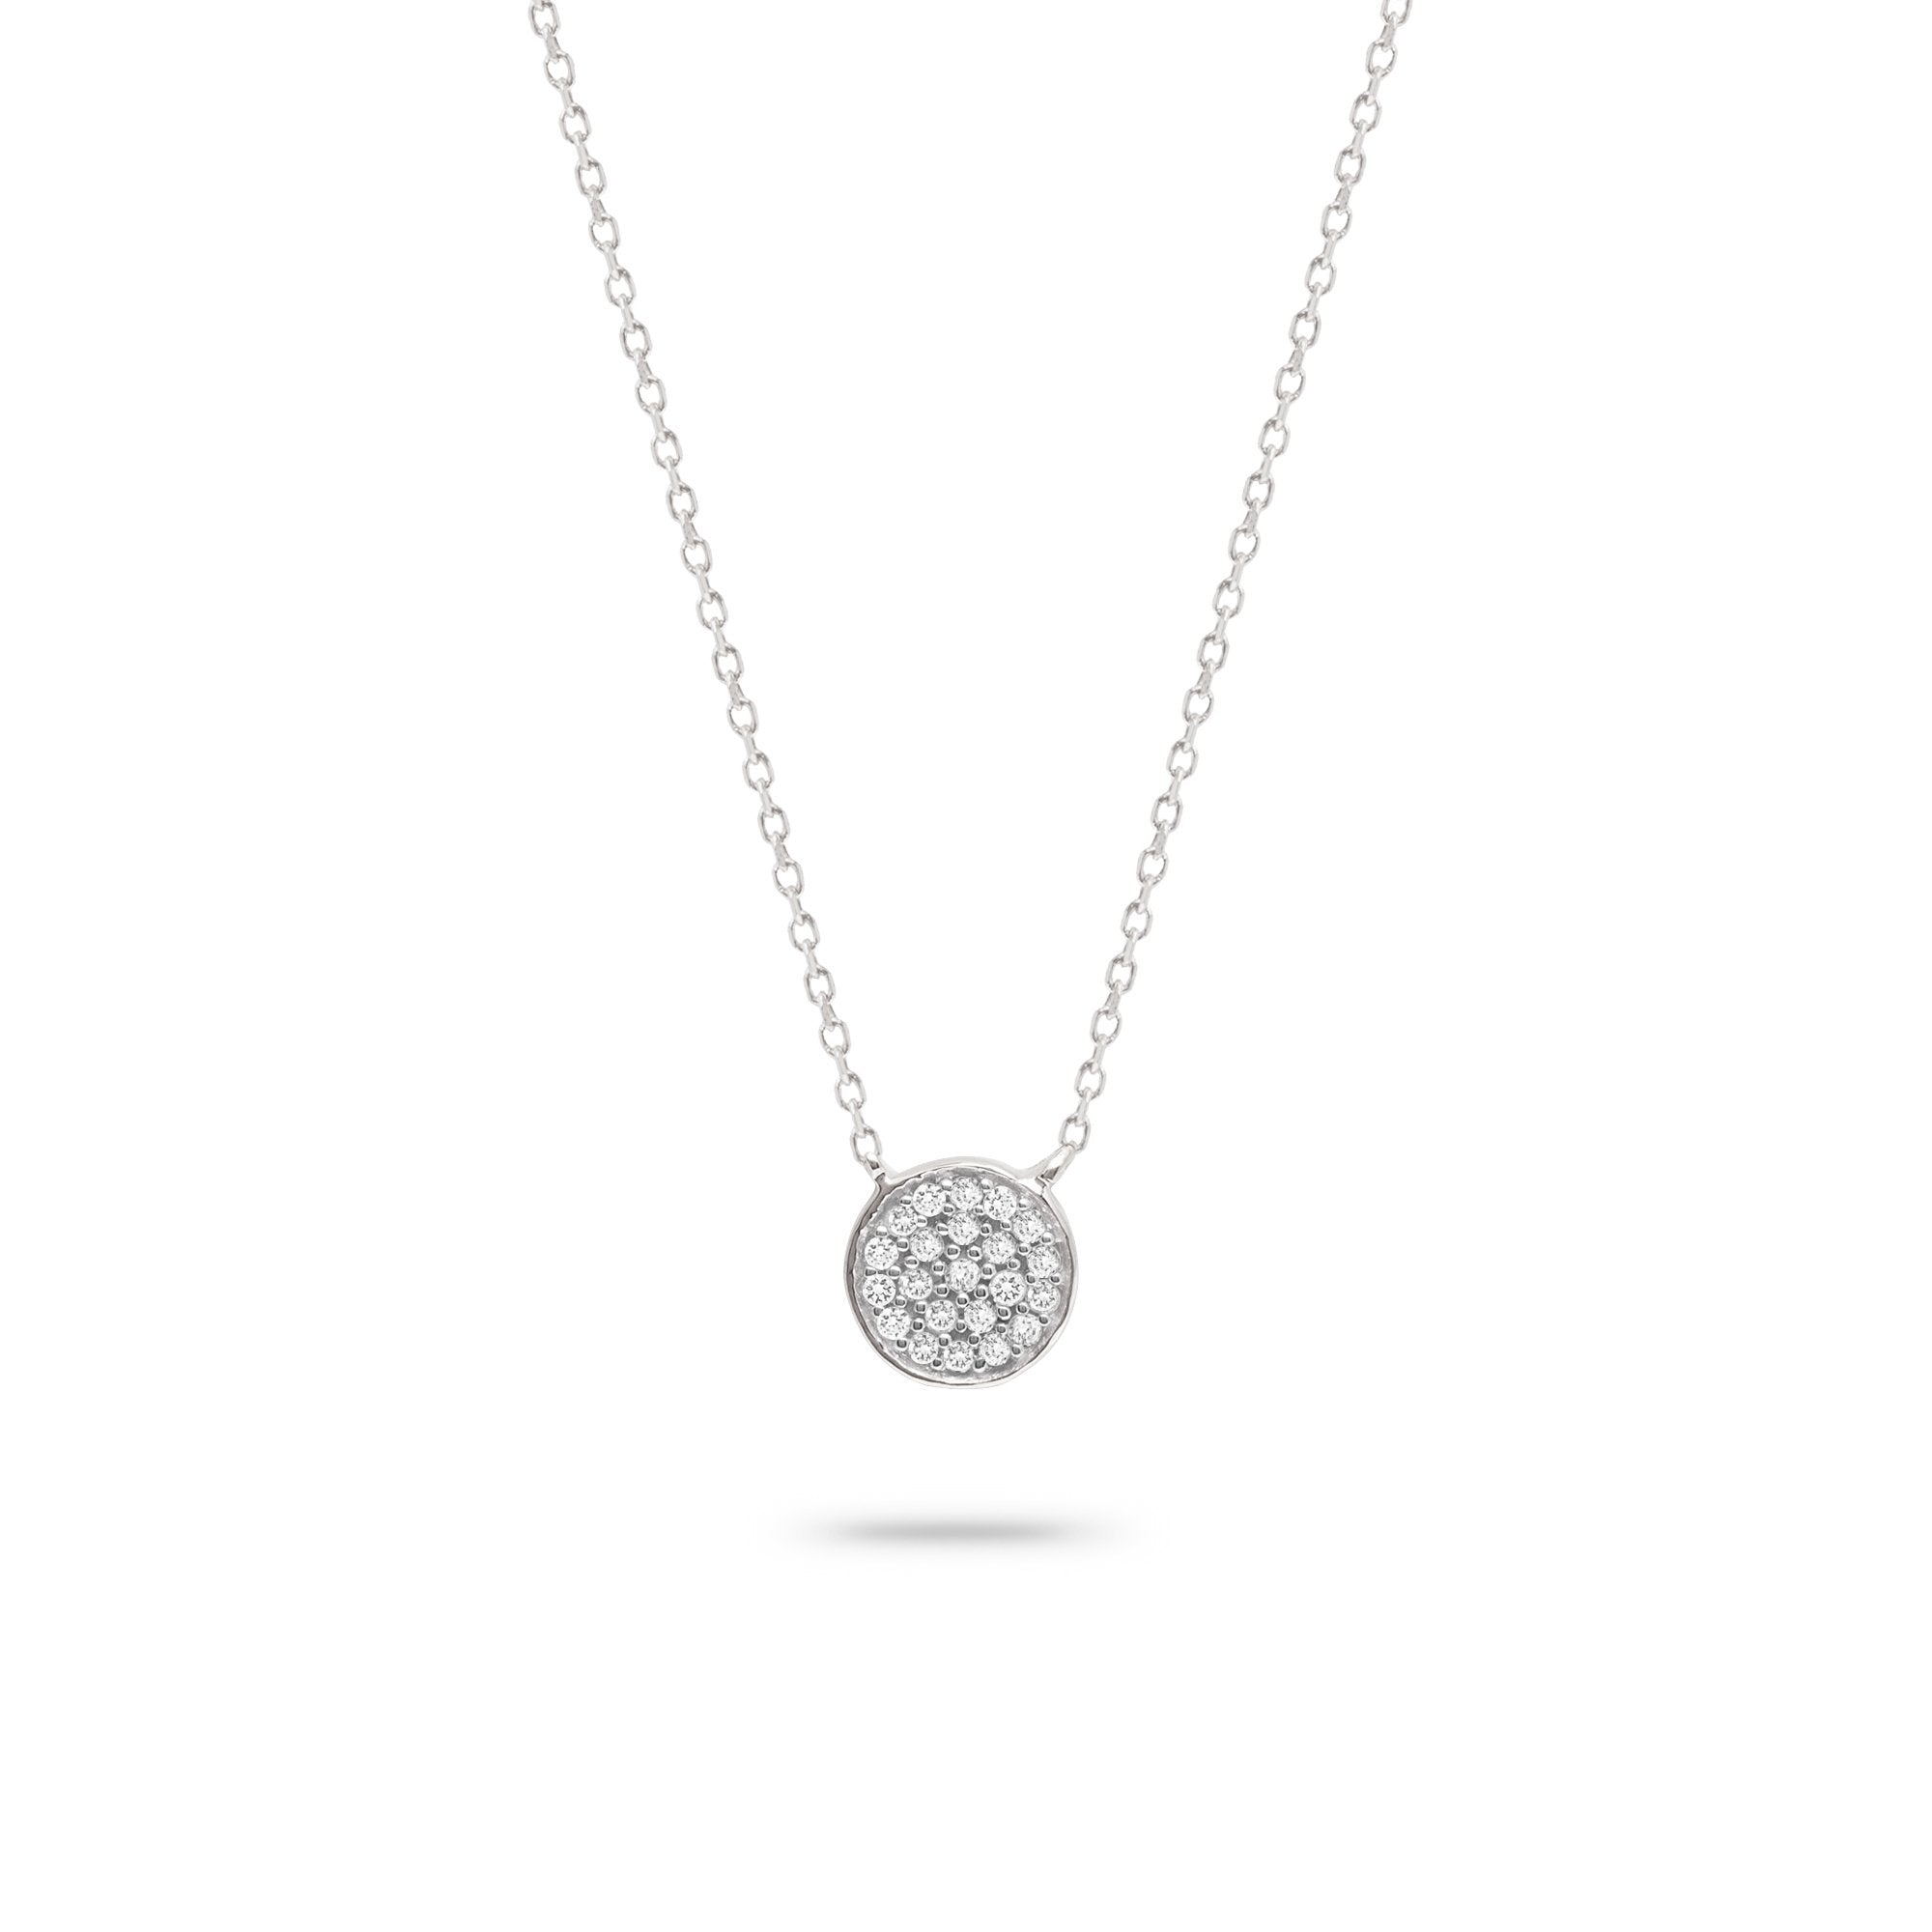 Solid Pavé Disc Necklace - Sterling Silver